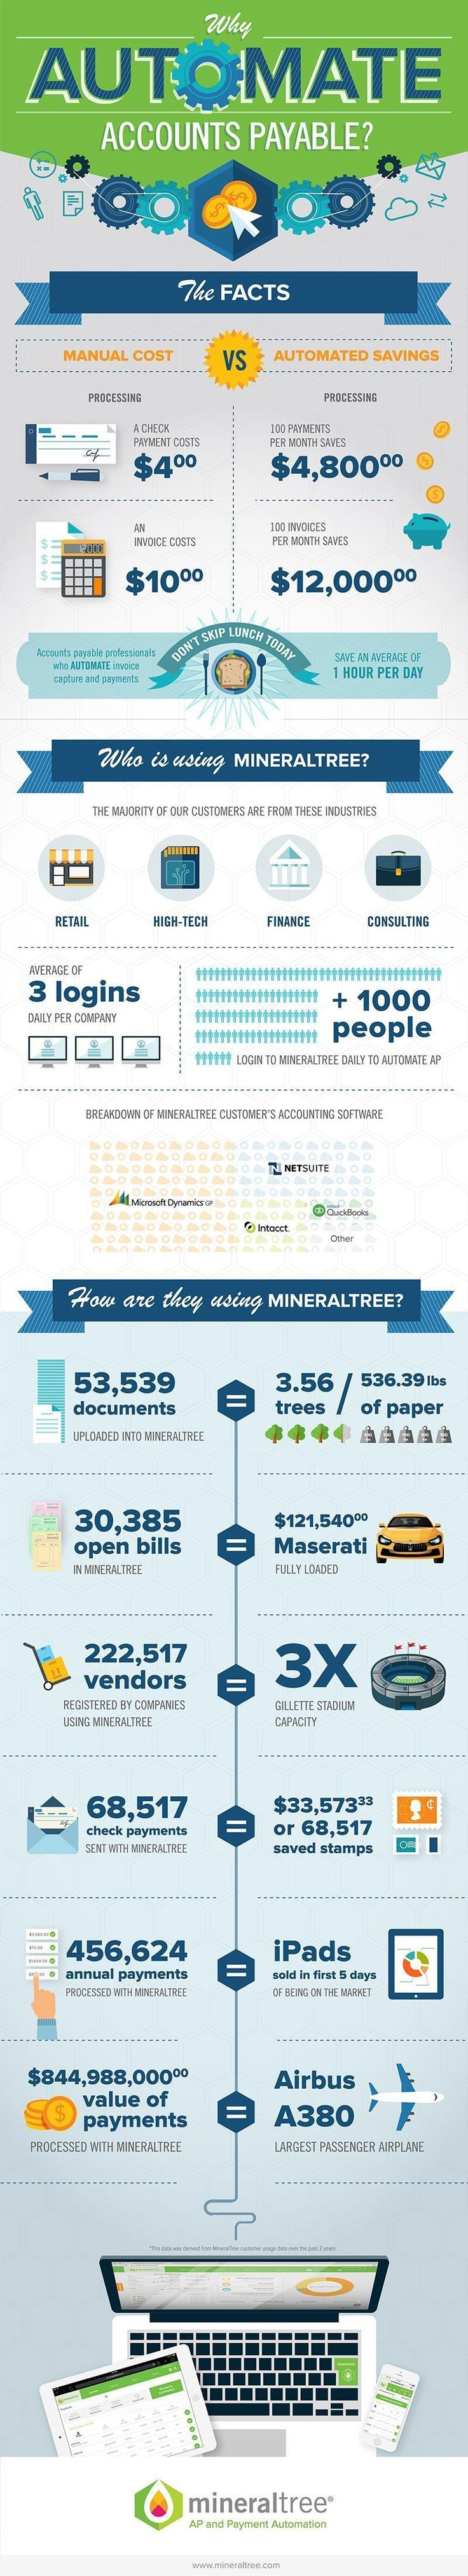 This infographic from MineralTree shows all benefits of an extensive electronic invoicing and payment processing software. From a customer's point of view, the program is easy for paying and for issuing the invoices and providing features to manage payments. MineralTree works with any accounting system, improves cash management and reduces expenses by optimizing payment method. #mbaaccounting